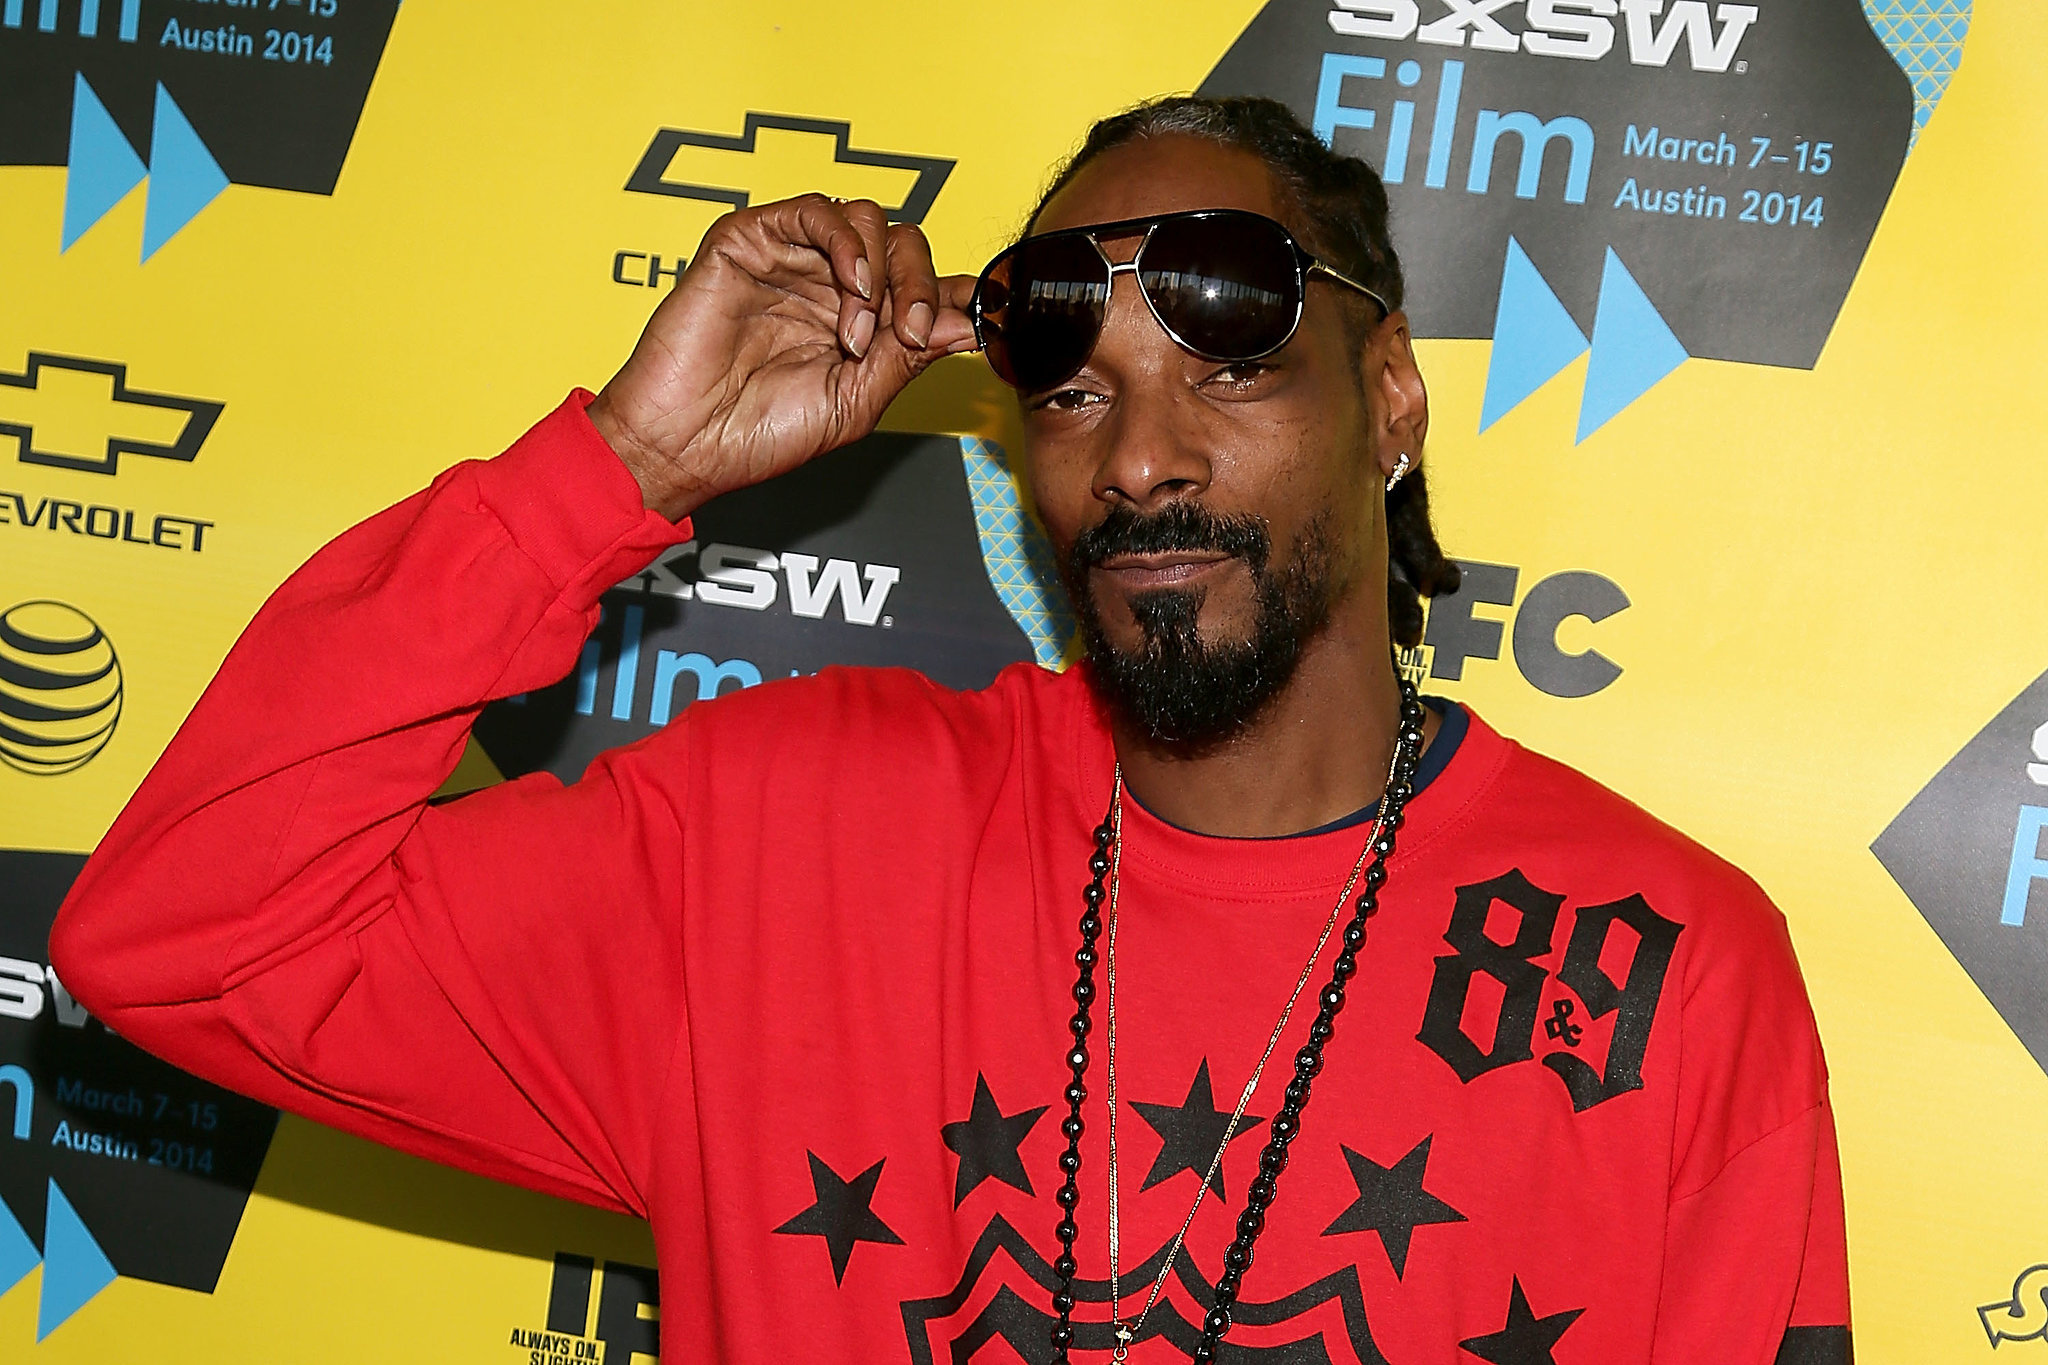 Snoop Dogg = Calvin Cordozar Broadus